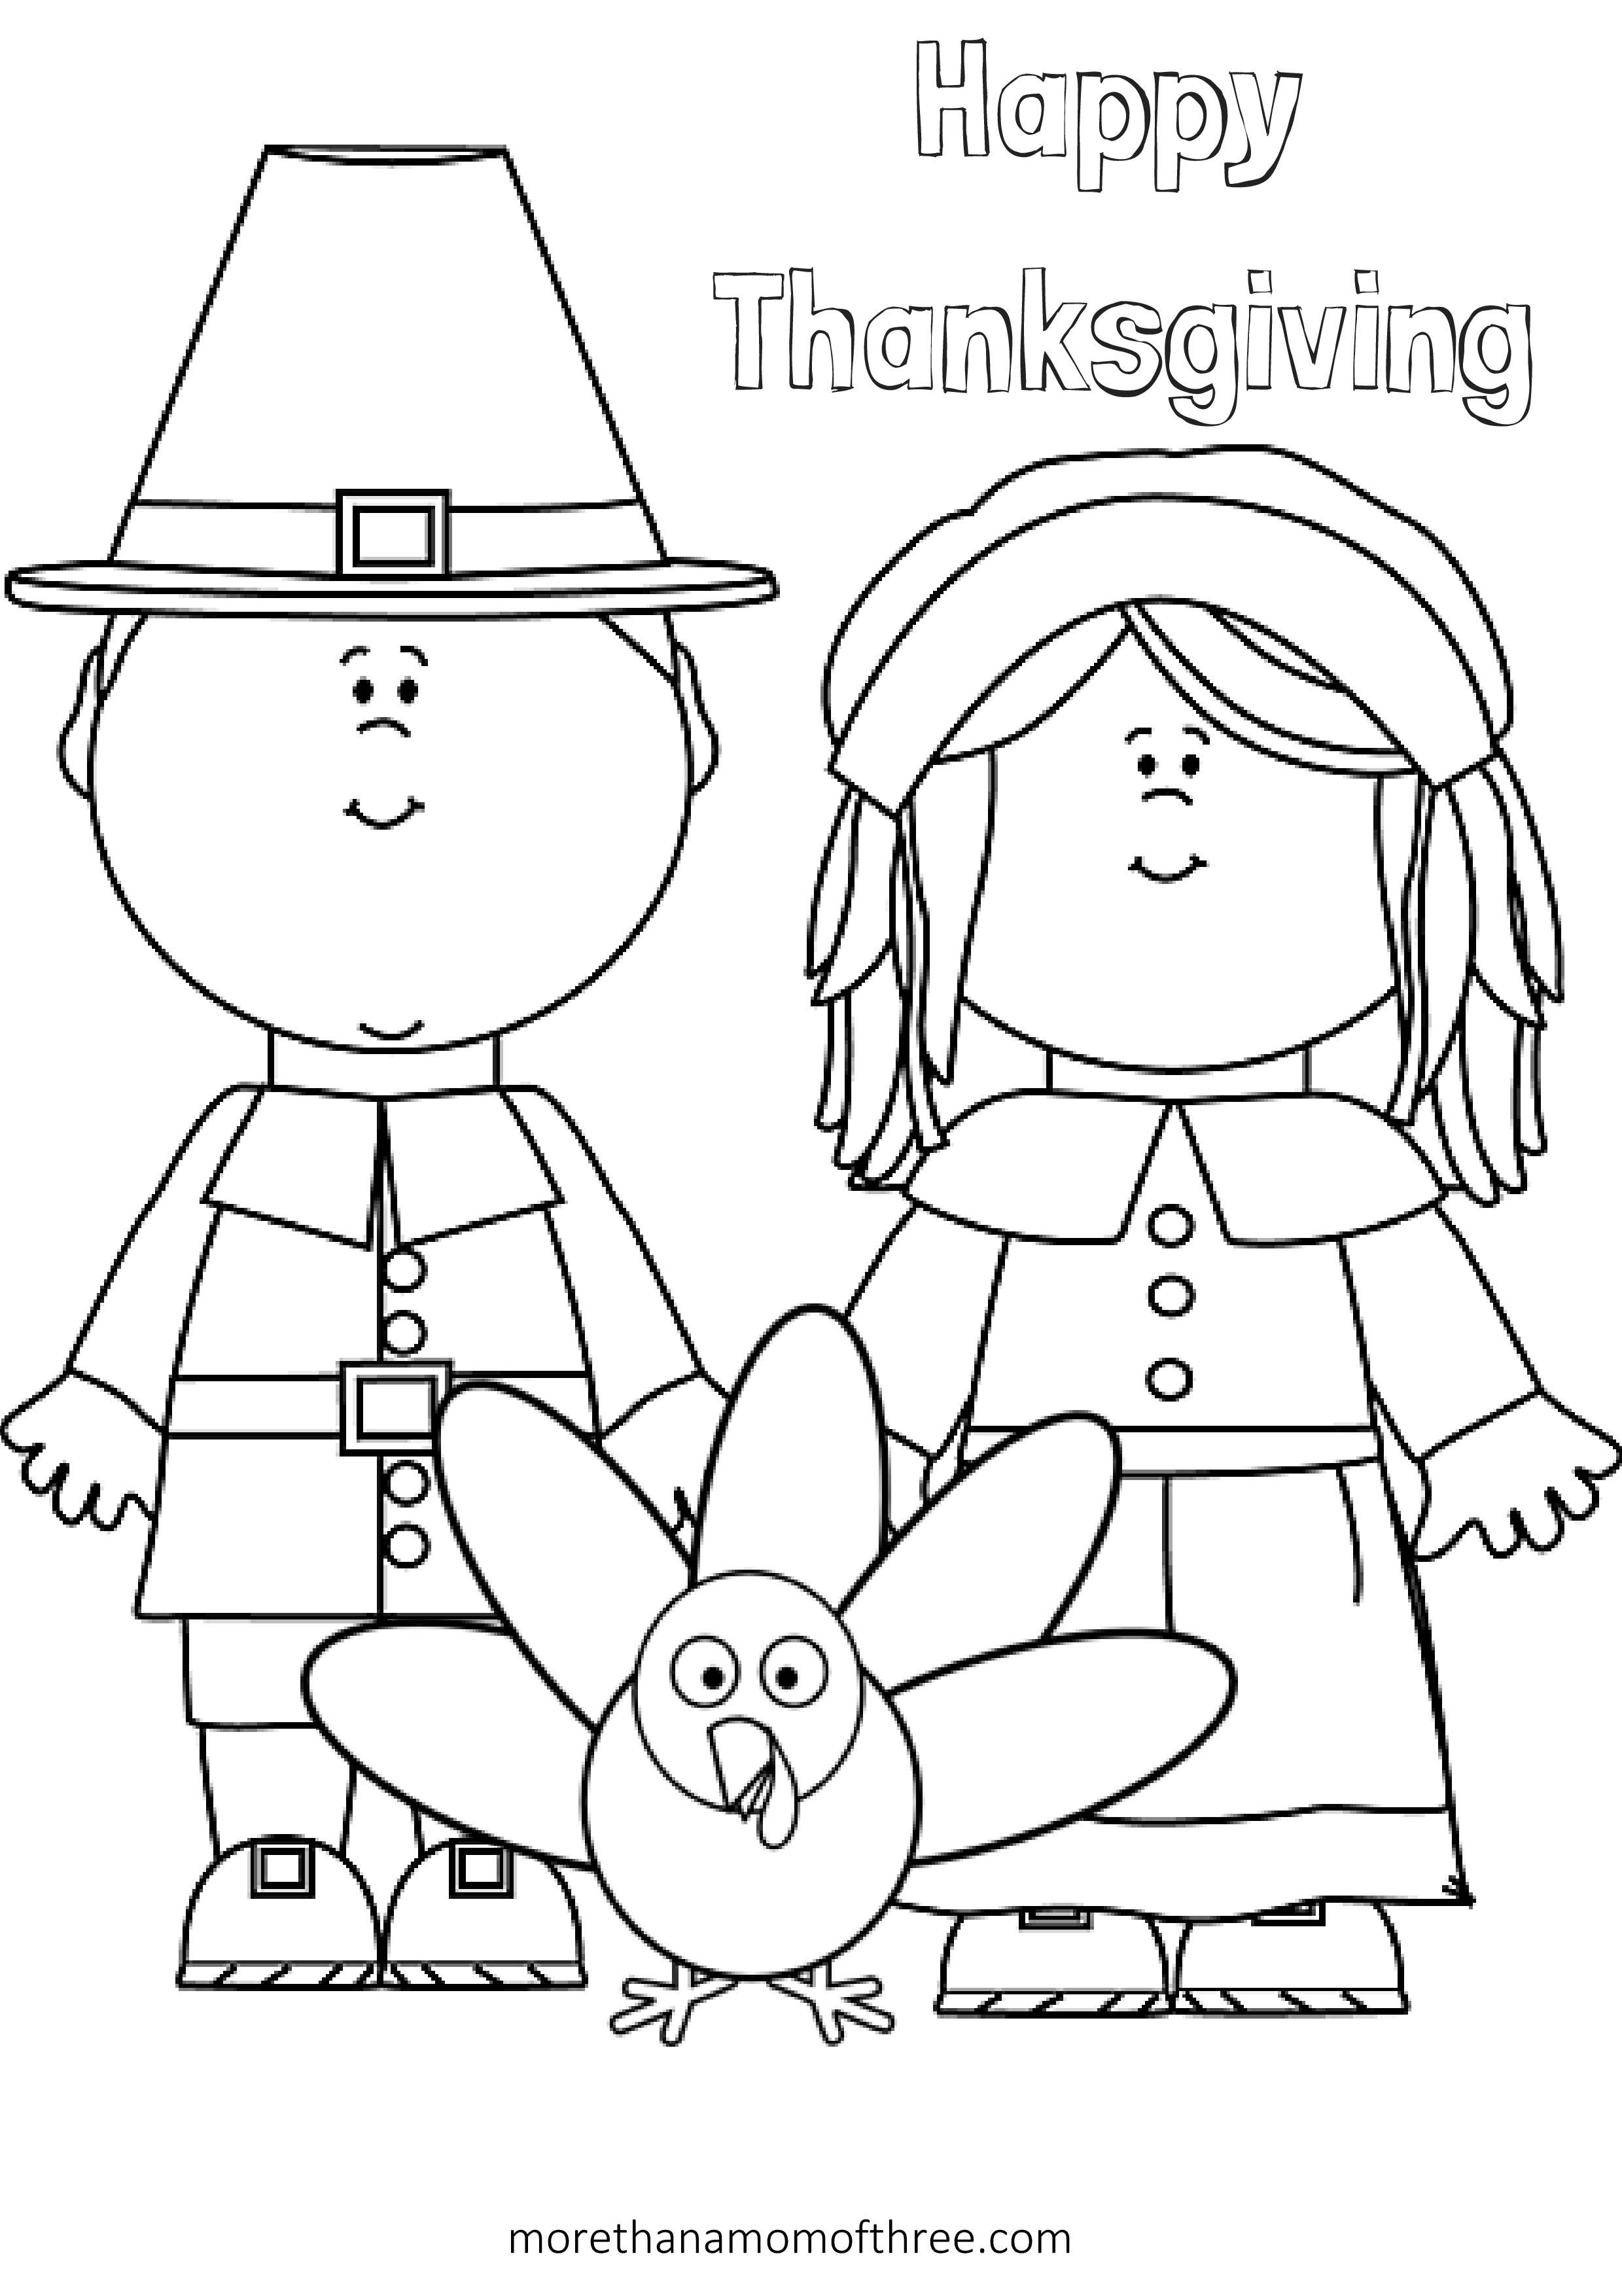 free thanksgiving coloring pages printable # 15